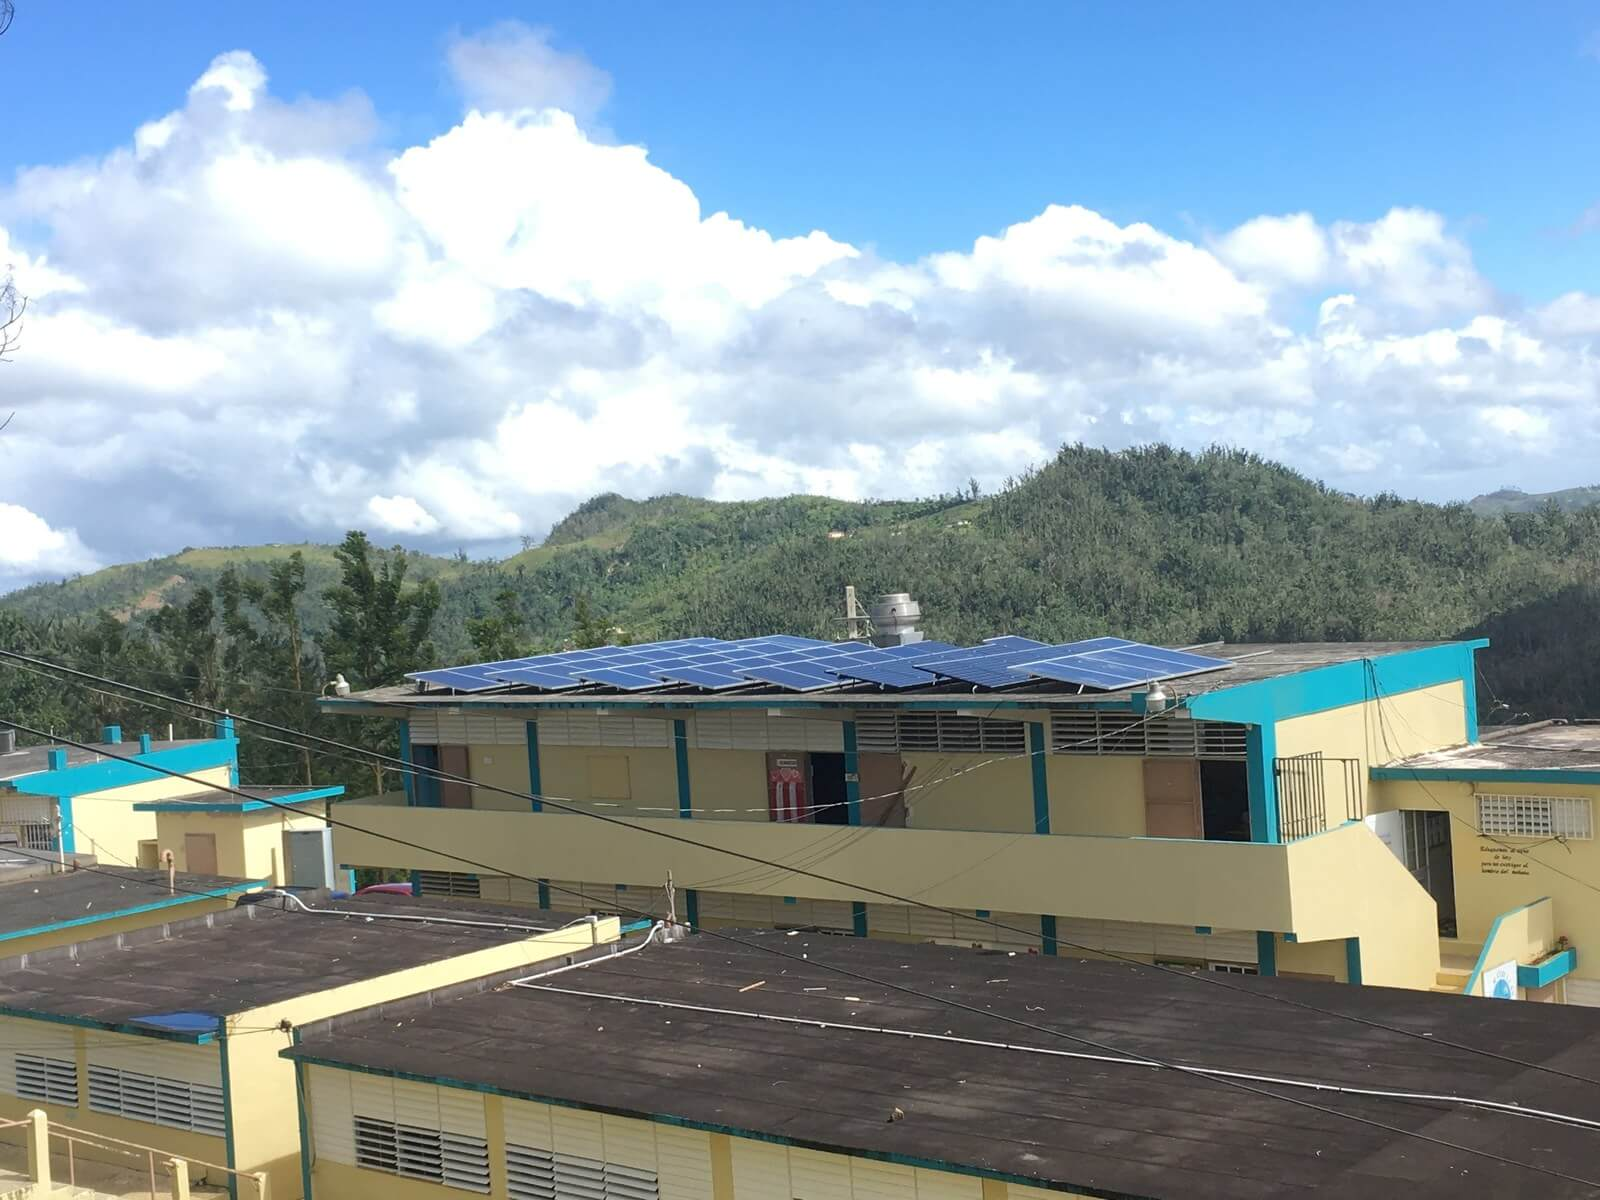 Microgrids post-hurricane recovery and energy resilience